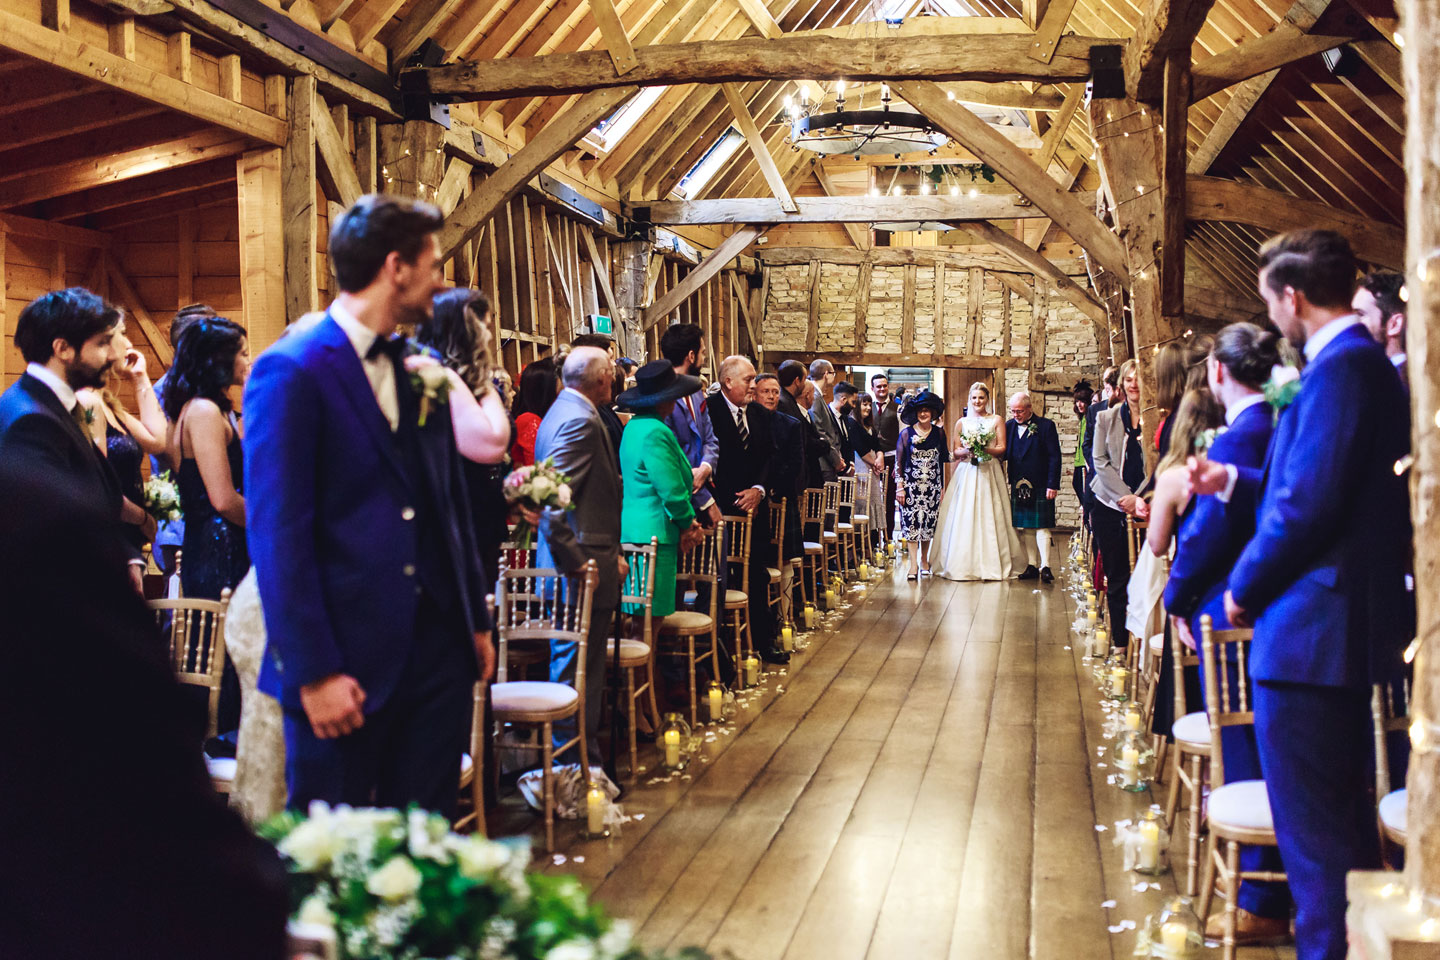 The beautiful bride walks down the aisle with her mother and father in the Rickety Barn